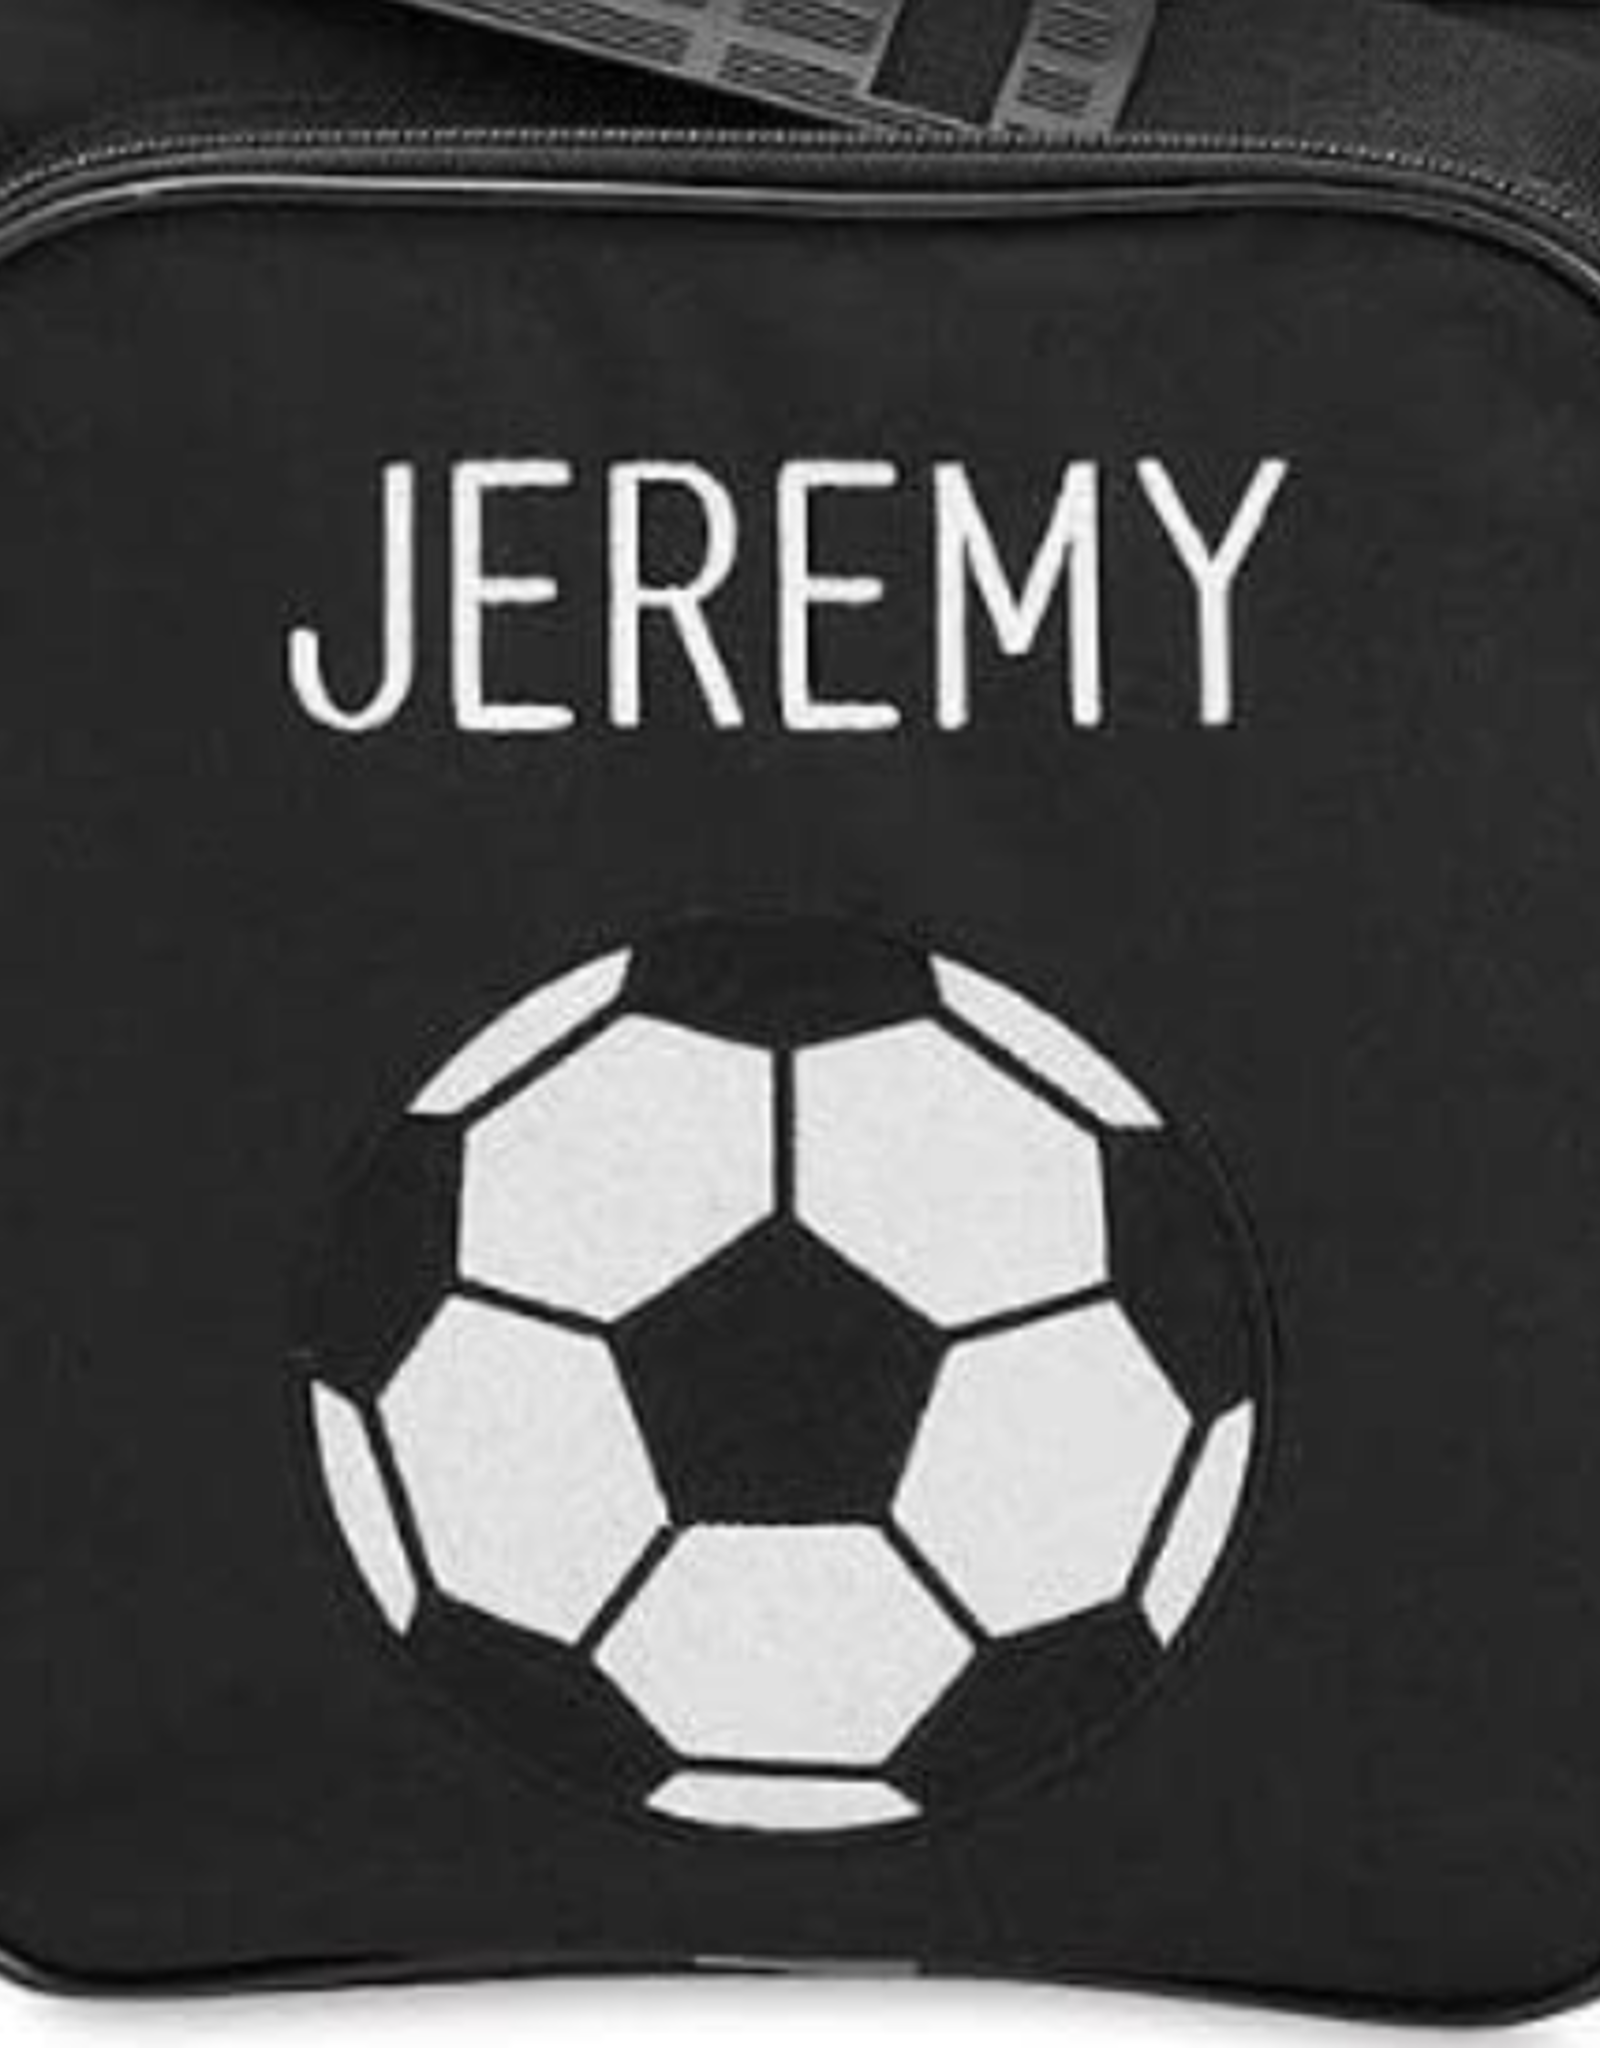 Soccer Bag Embroidery